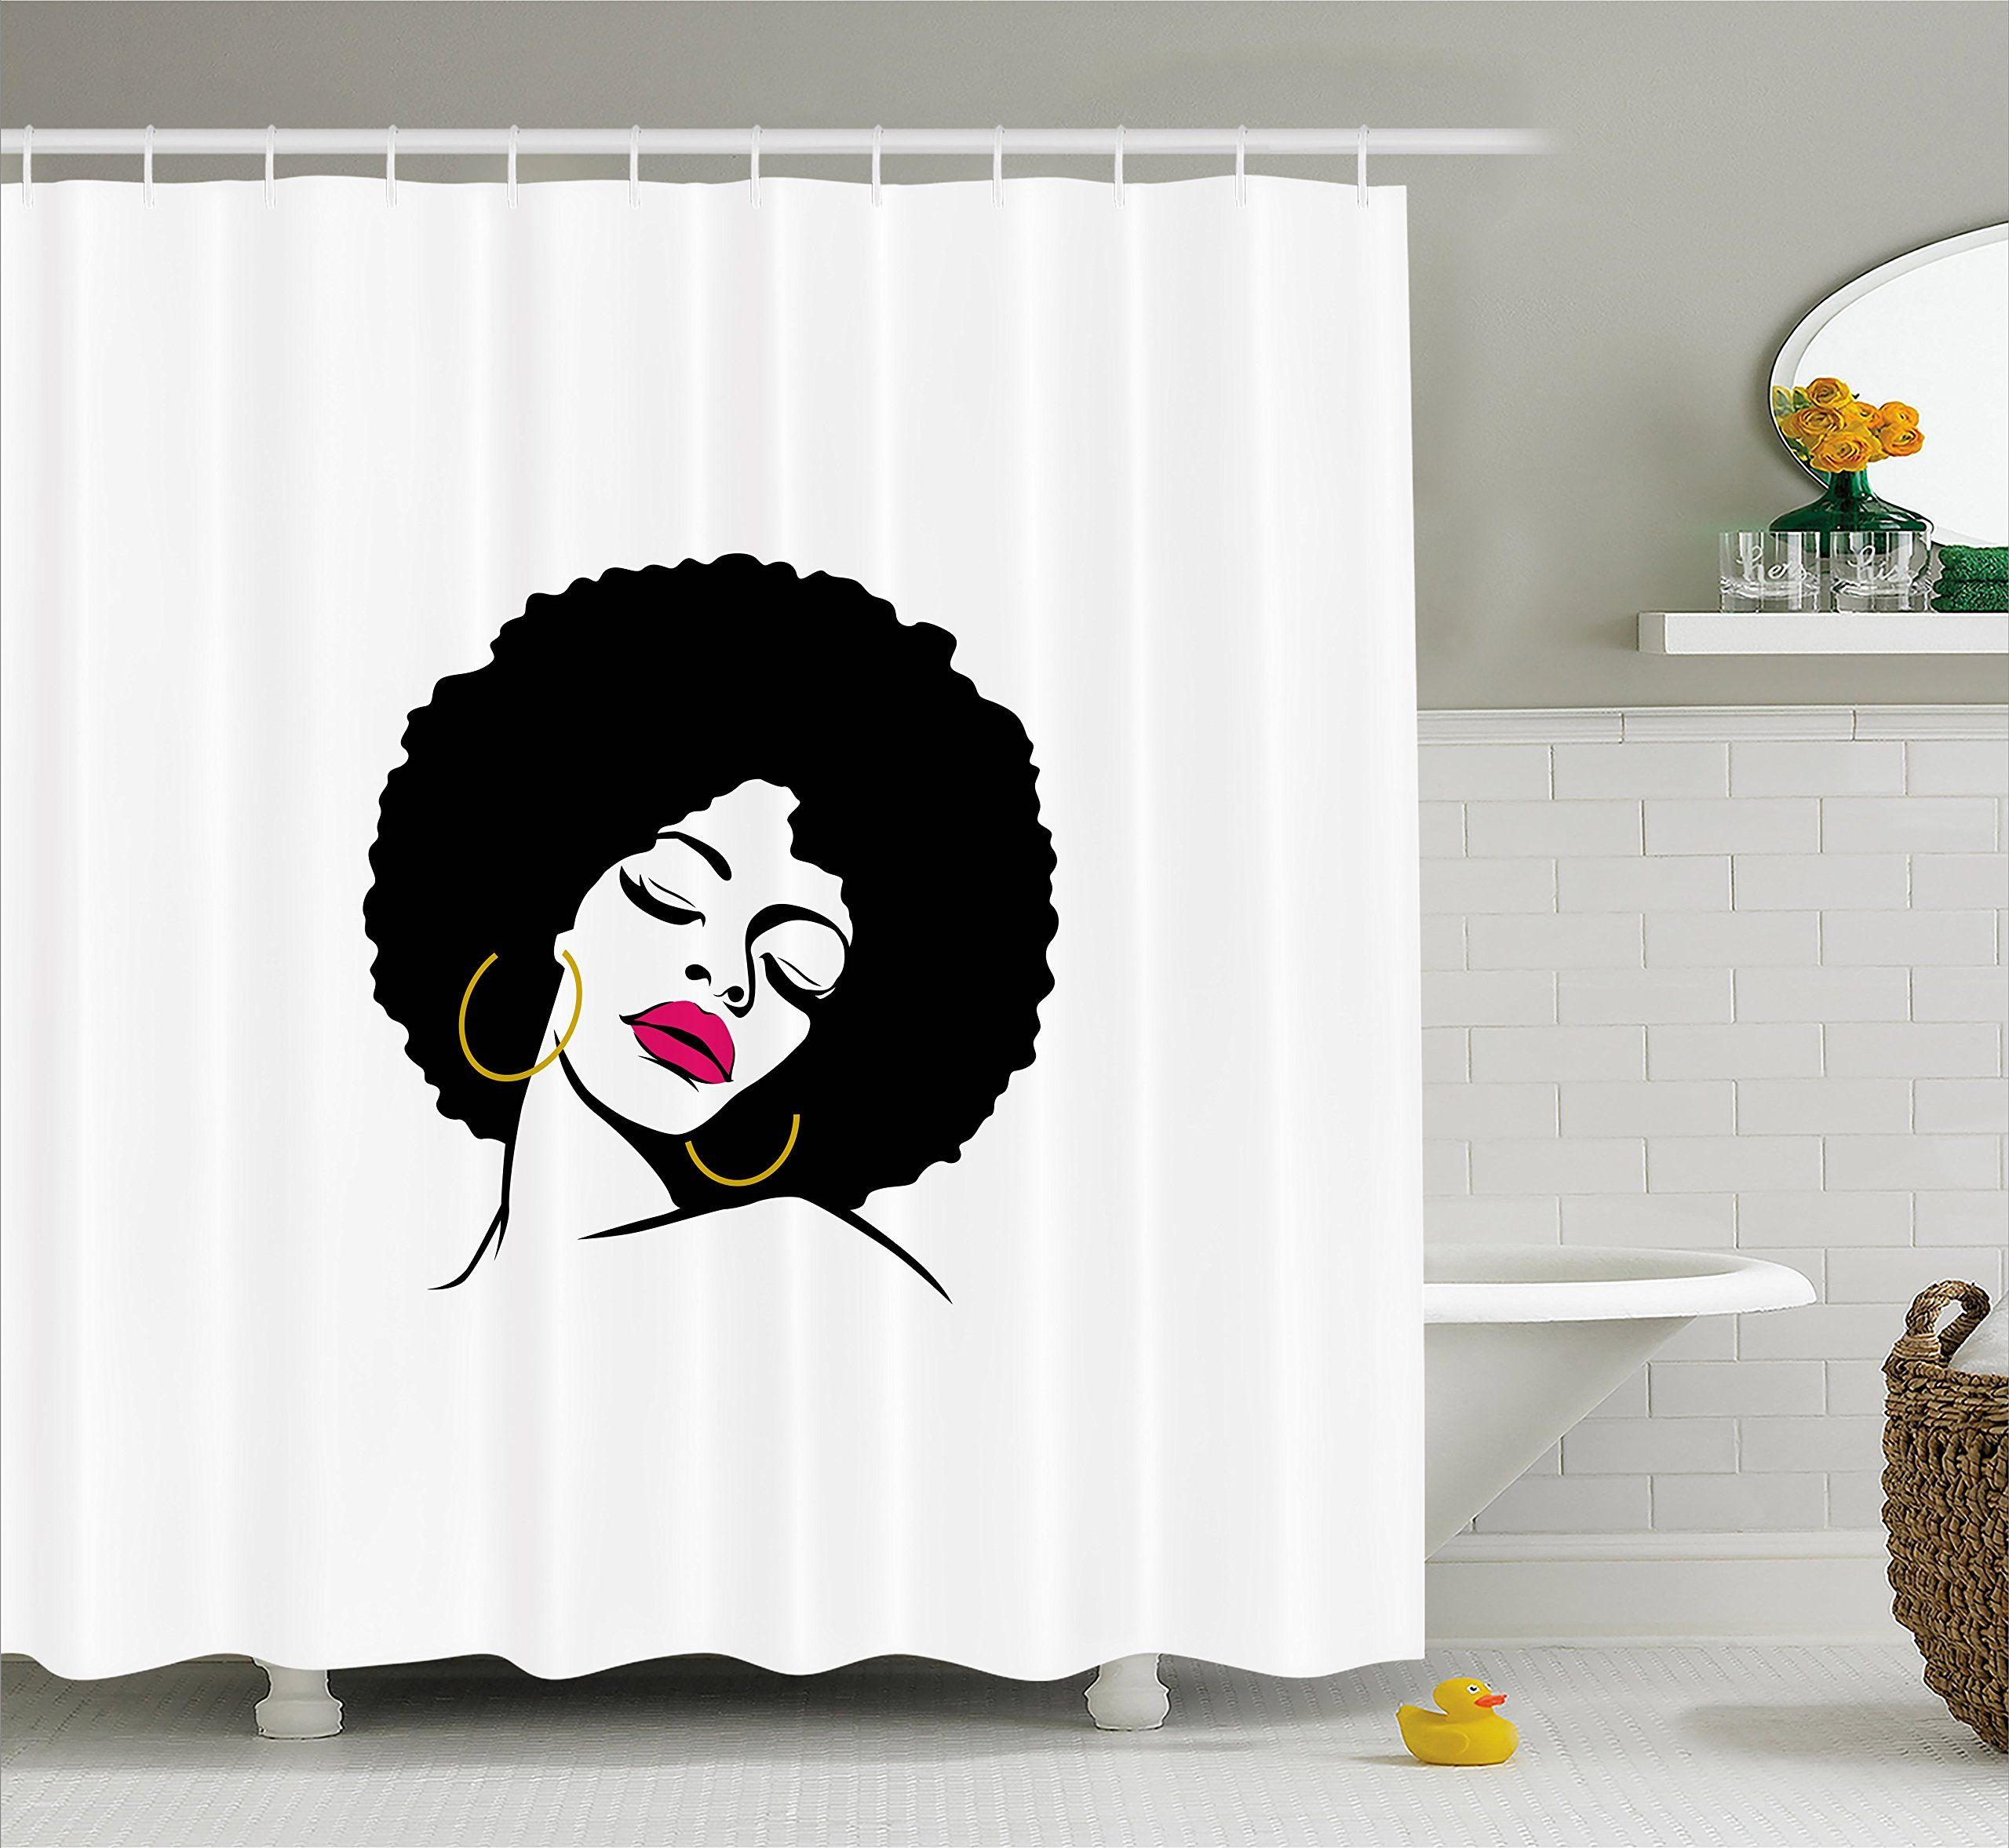 Black Woman Shower Curtain By Lunarable Woman With Afro Hairline